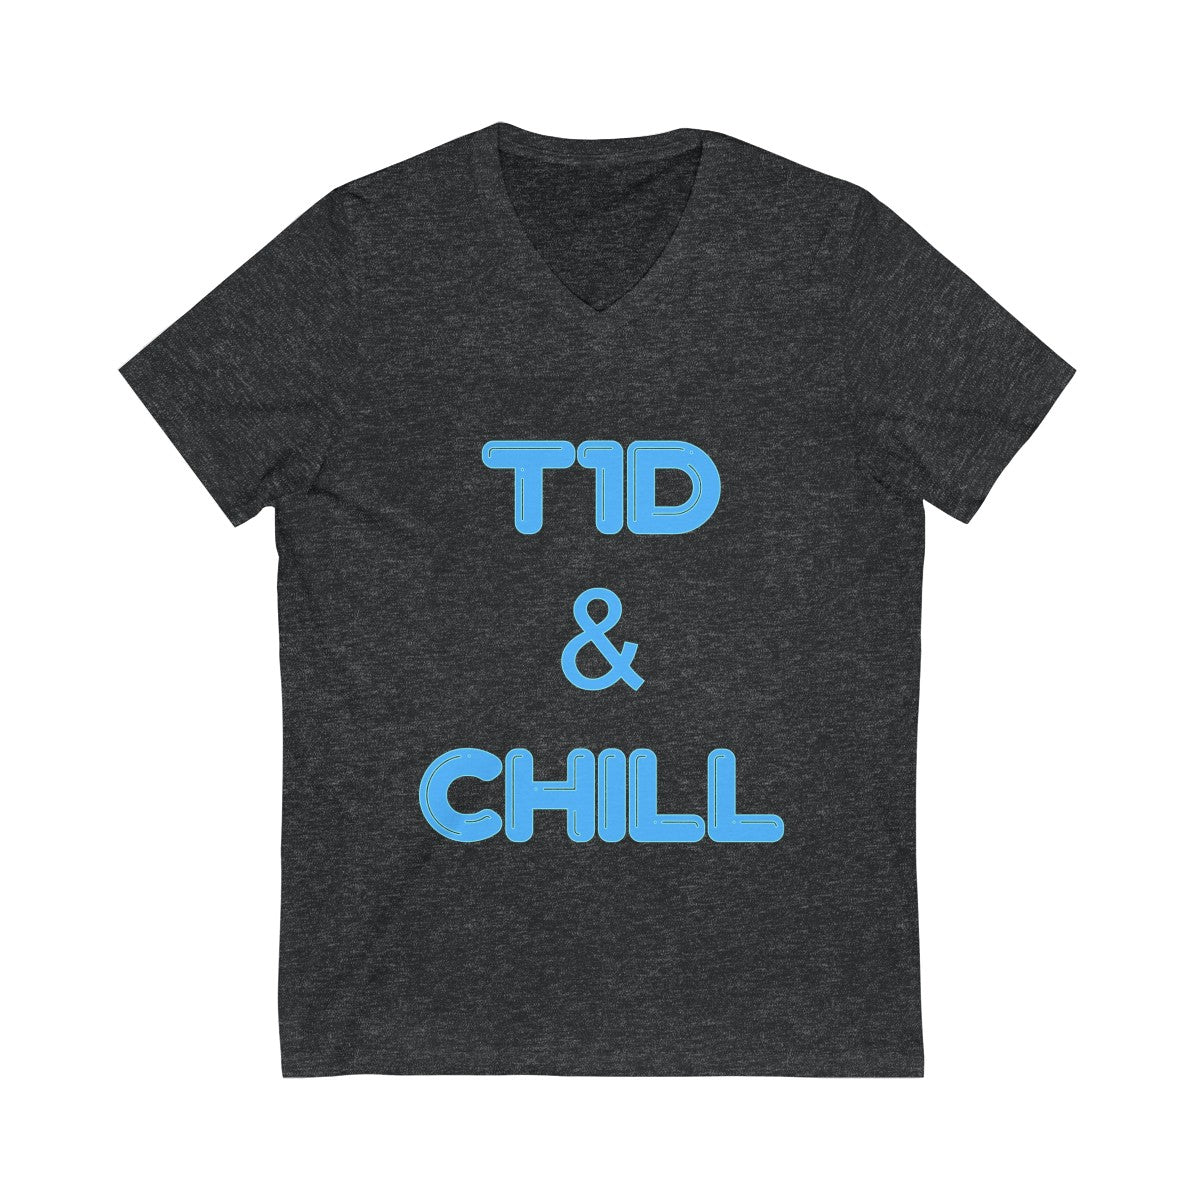 T1D & Chill - Unisex Jersey Short Sleeve V-Neck Tee - PY